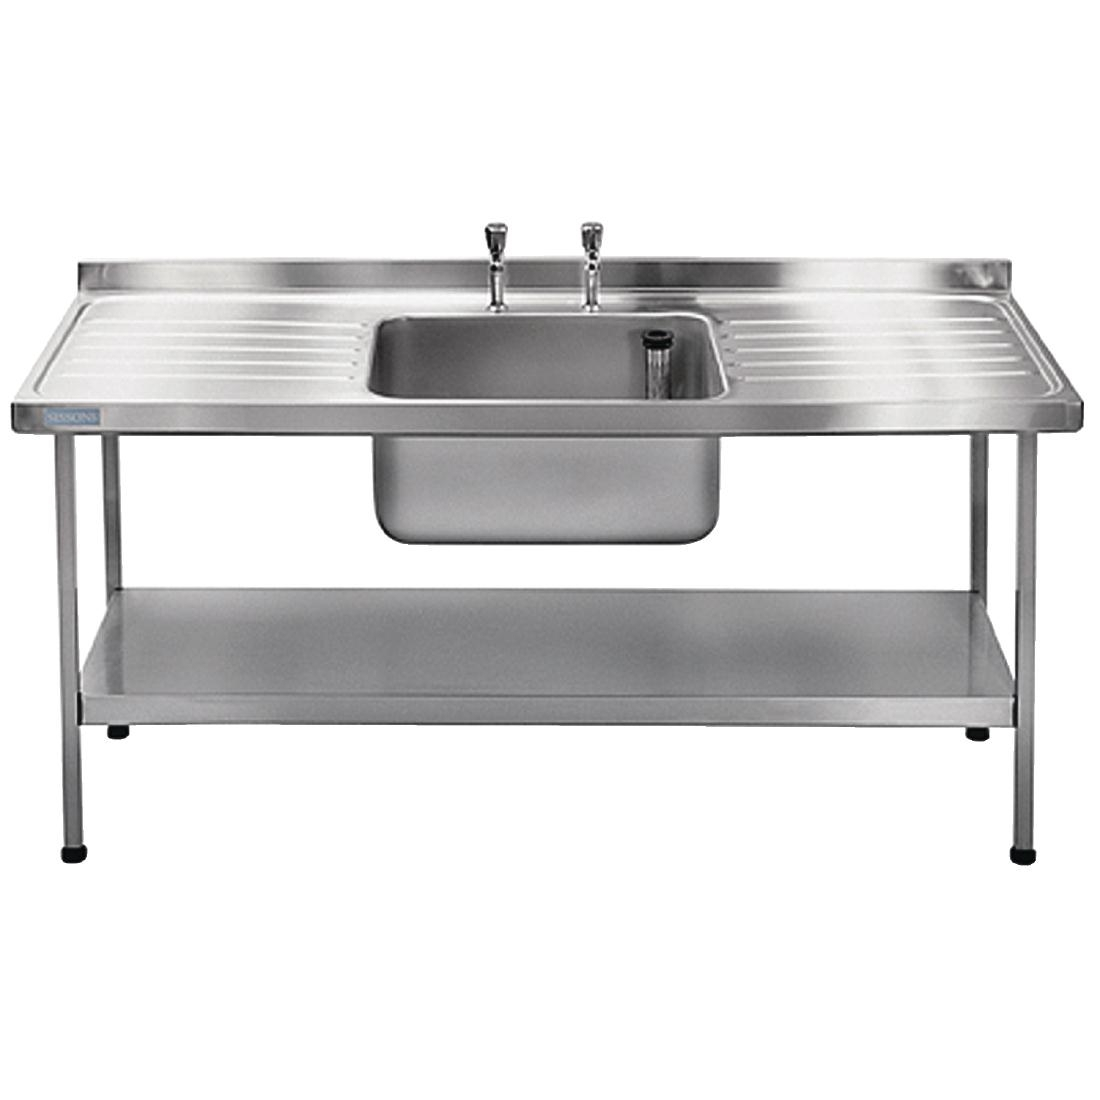 Franke Sissons Stainless Steel Sink Centre Bowl 1800x650mm